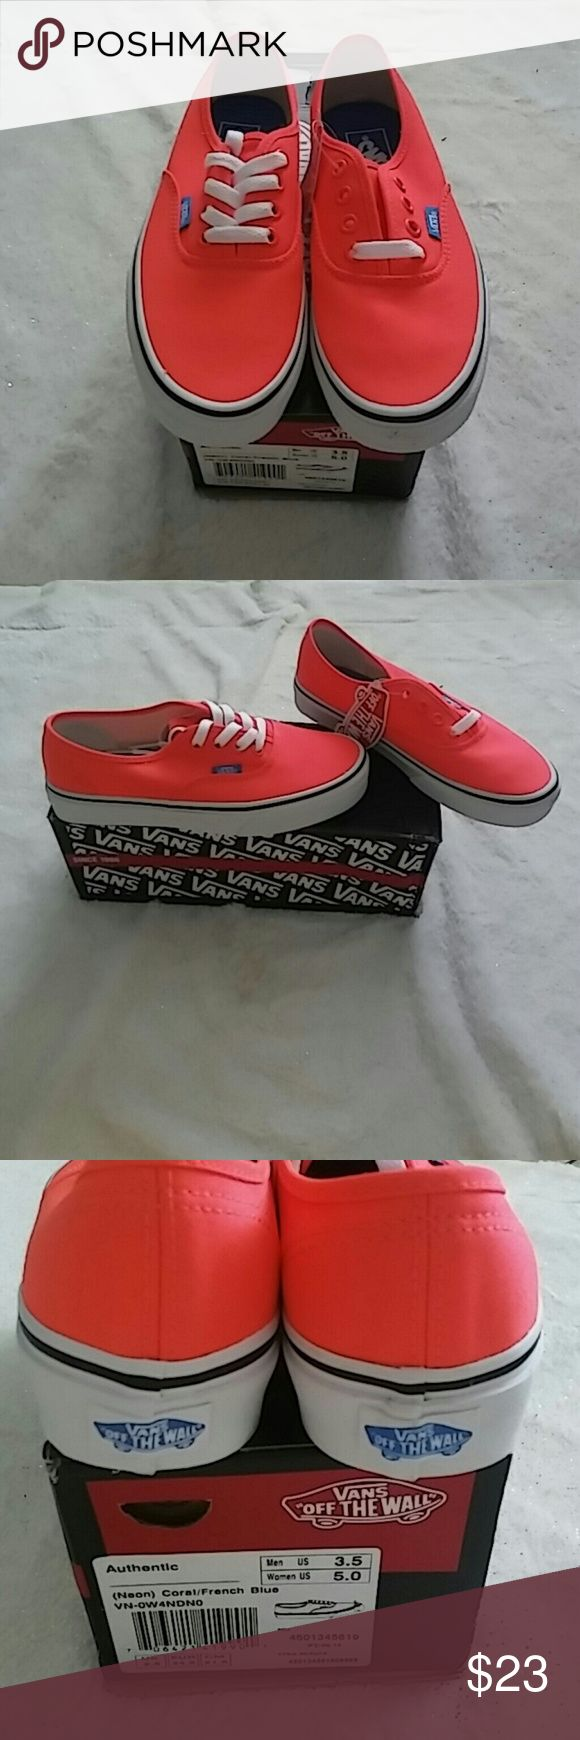 Nib womens neon vans This is a new pair of women's size 5 neon Coral and blue Vans Vans Shoes